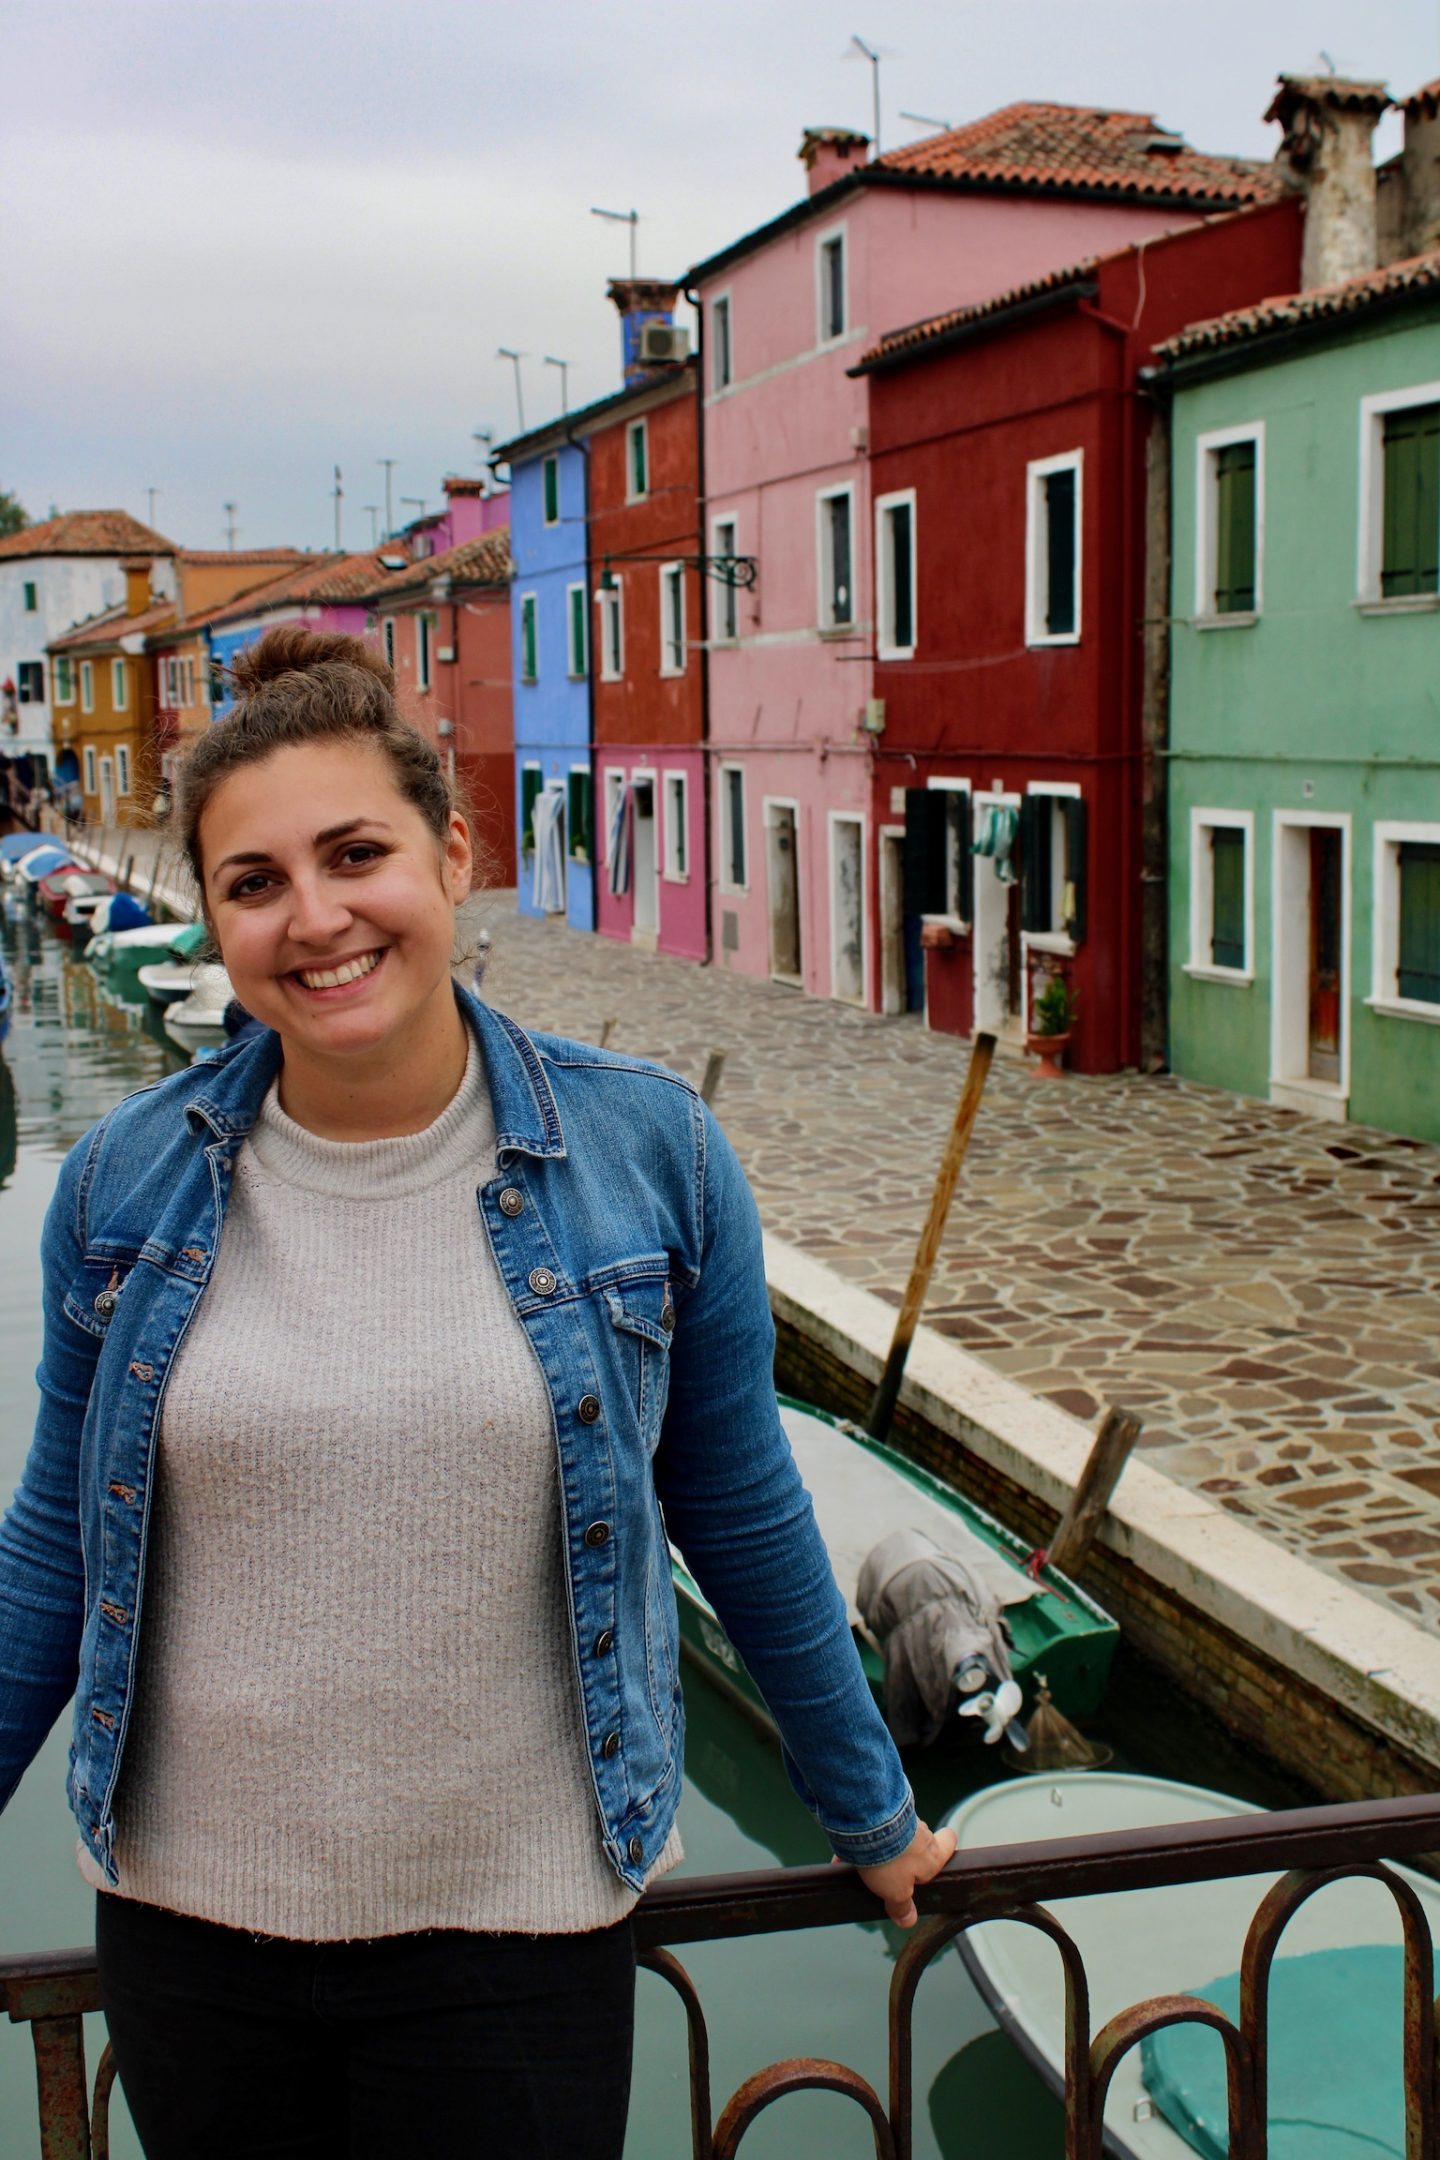 Nell on a bridge on the island of Burano, looking at the camera and smiling